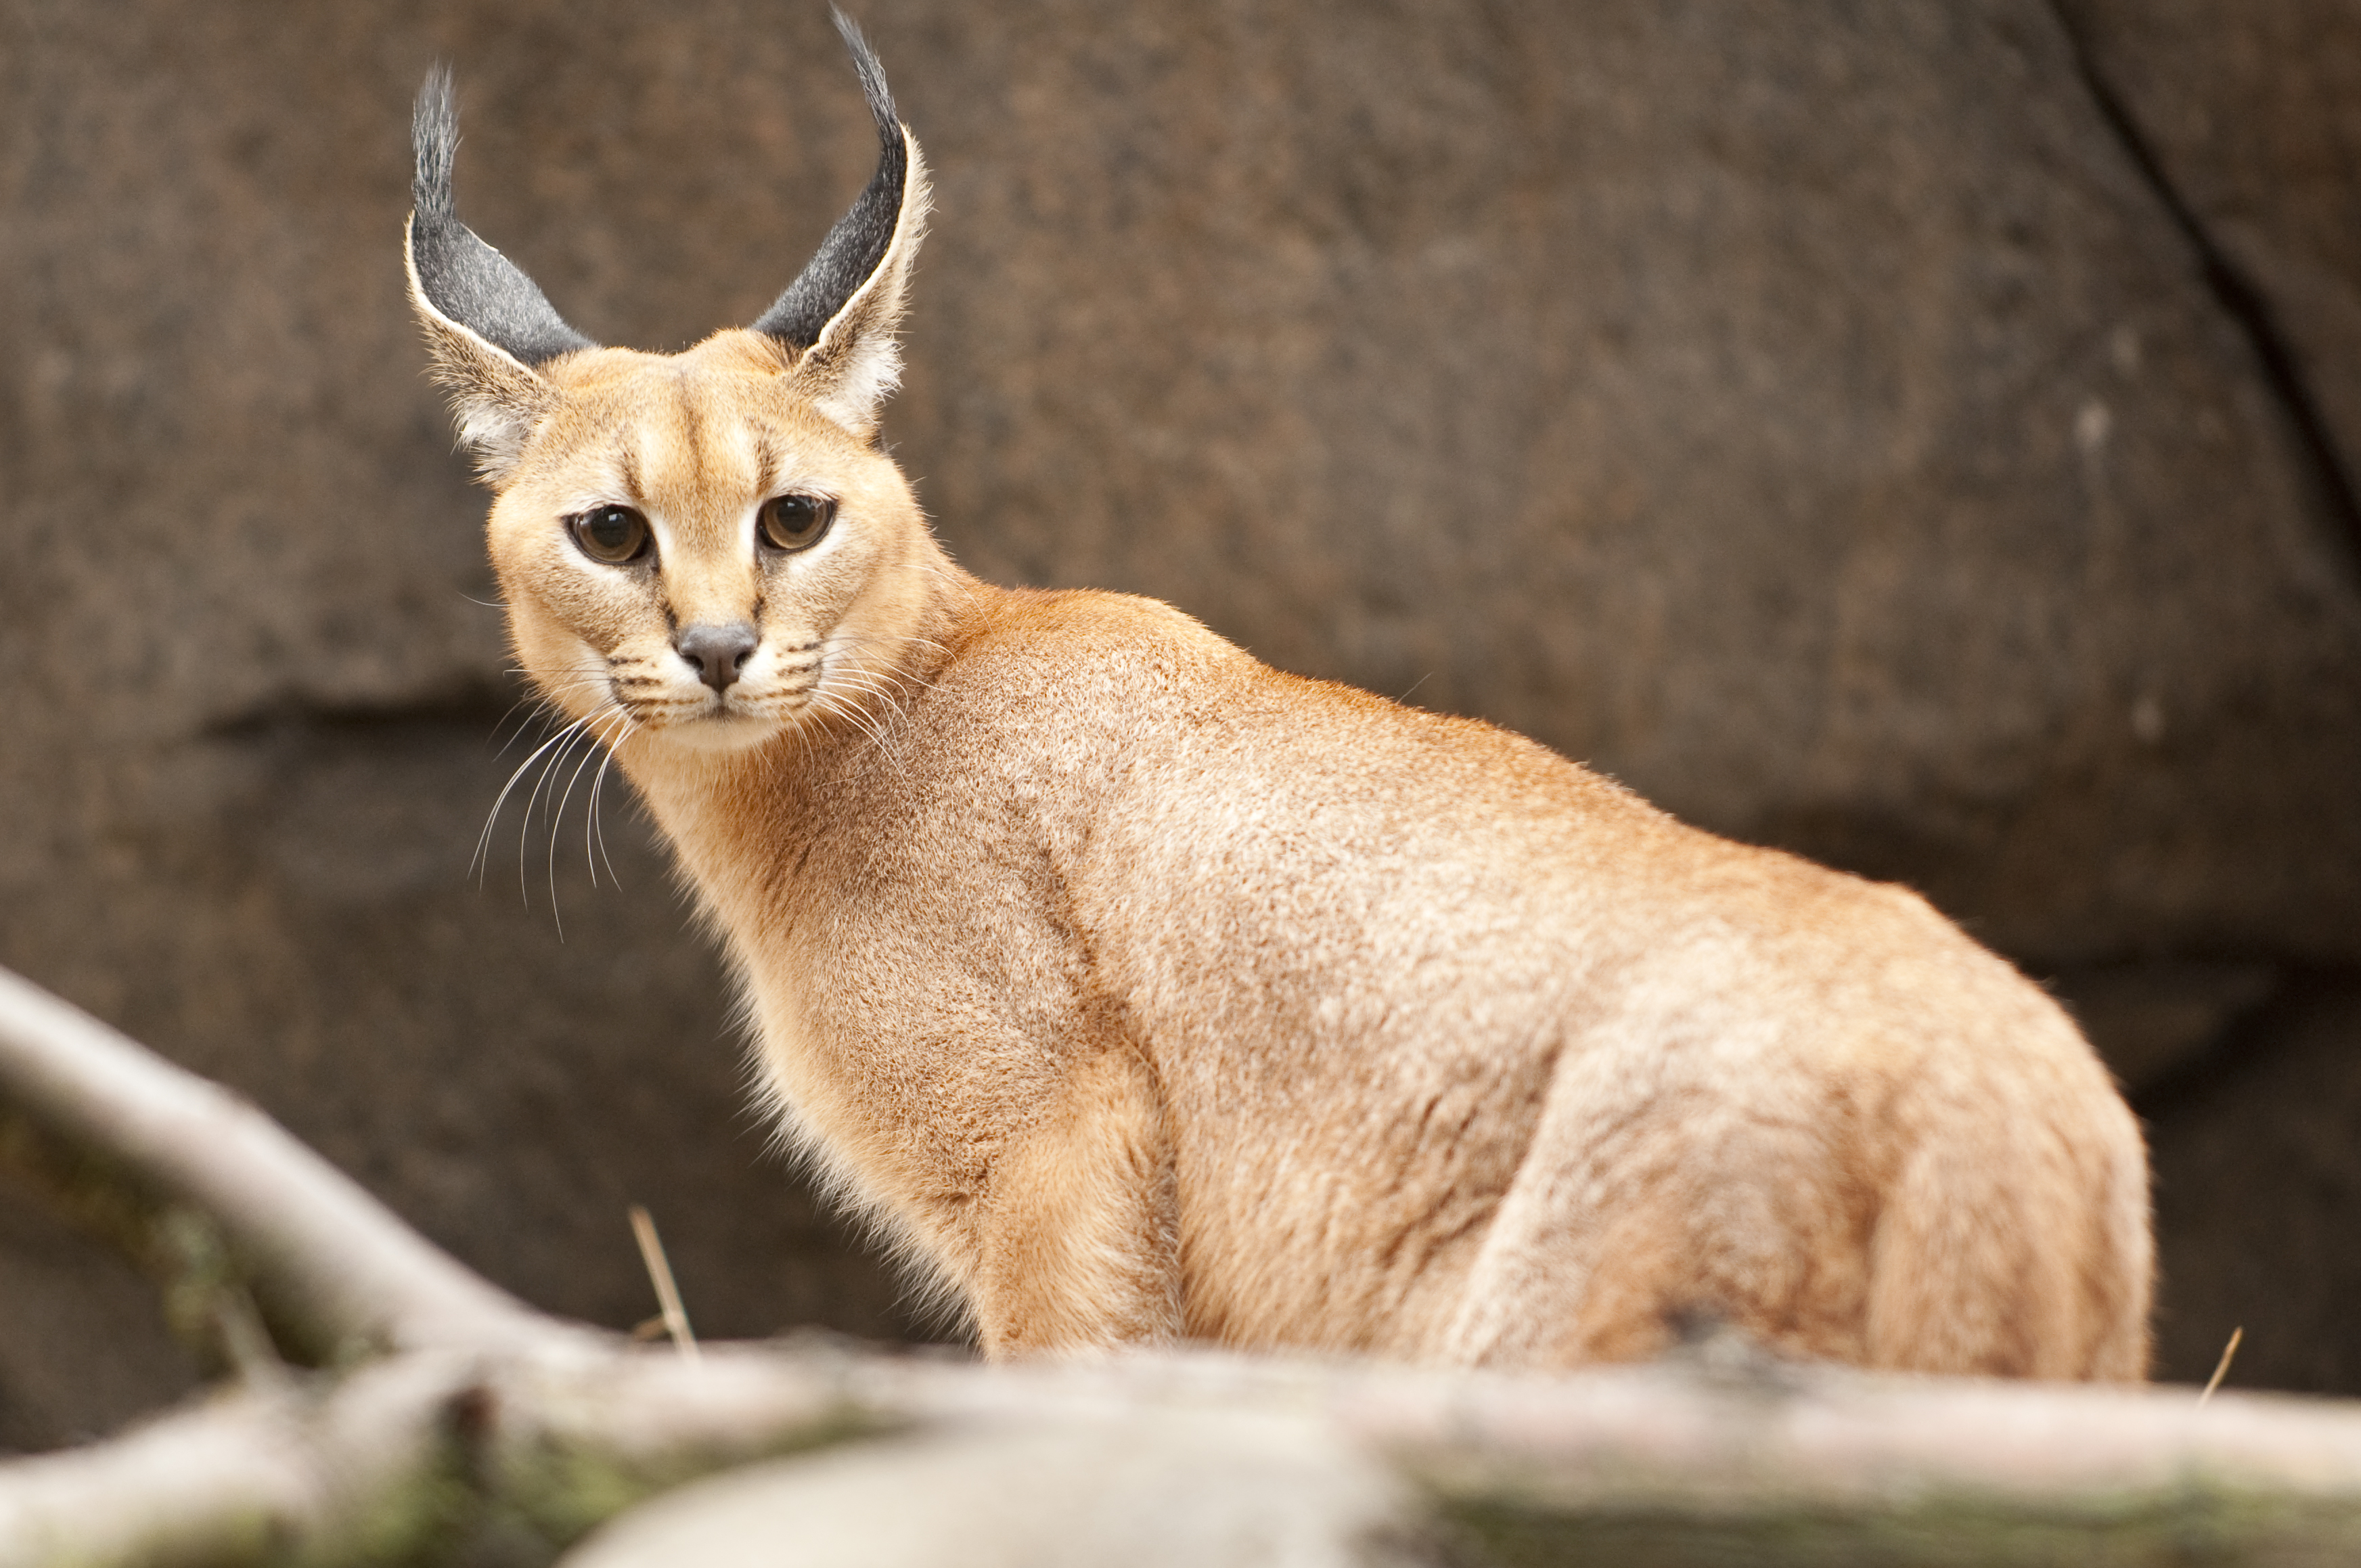 https://i2.wp.com/www.oregonzoo.org/sites/default/files/gallery/images/H_orig_caracal_closeup_gal.jpg